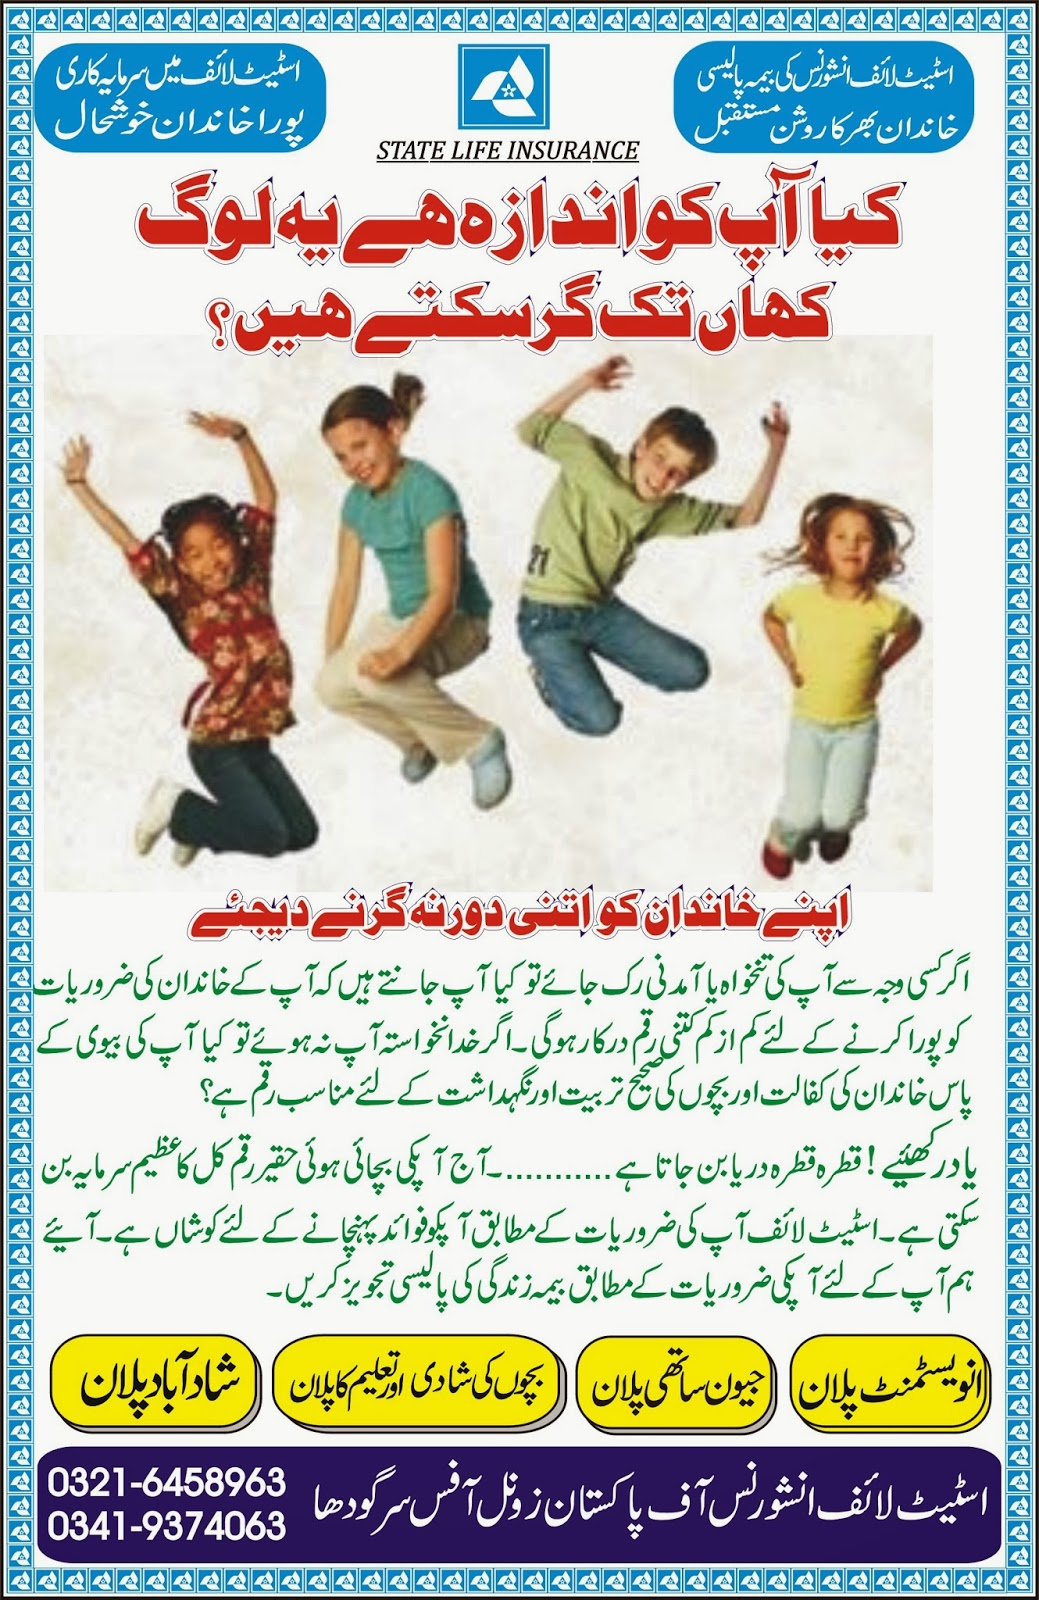 Image Result For State Life Insurance